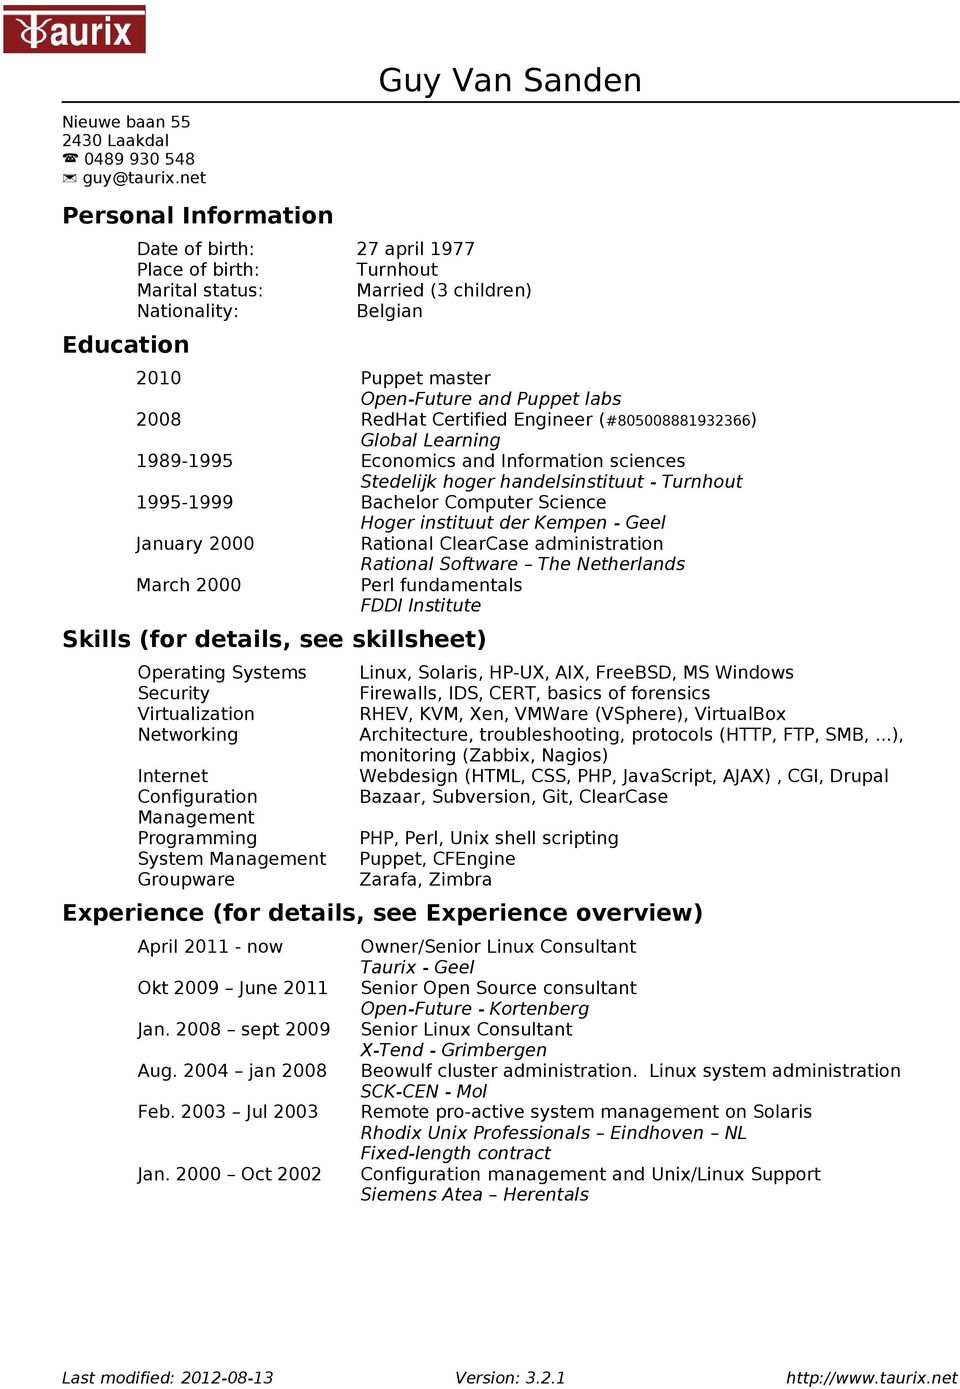 RedHat Certified Engineer (#805008881932366) Global Learning 1989-1995 Economics and Information sciences Stedelijk hoger handelsinstituut - Turnhout 1995-1999 Bachelor Computer Science Hoger